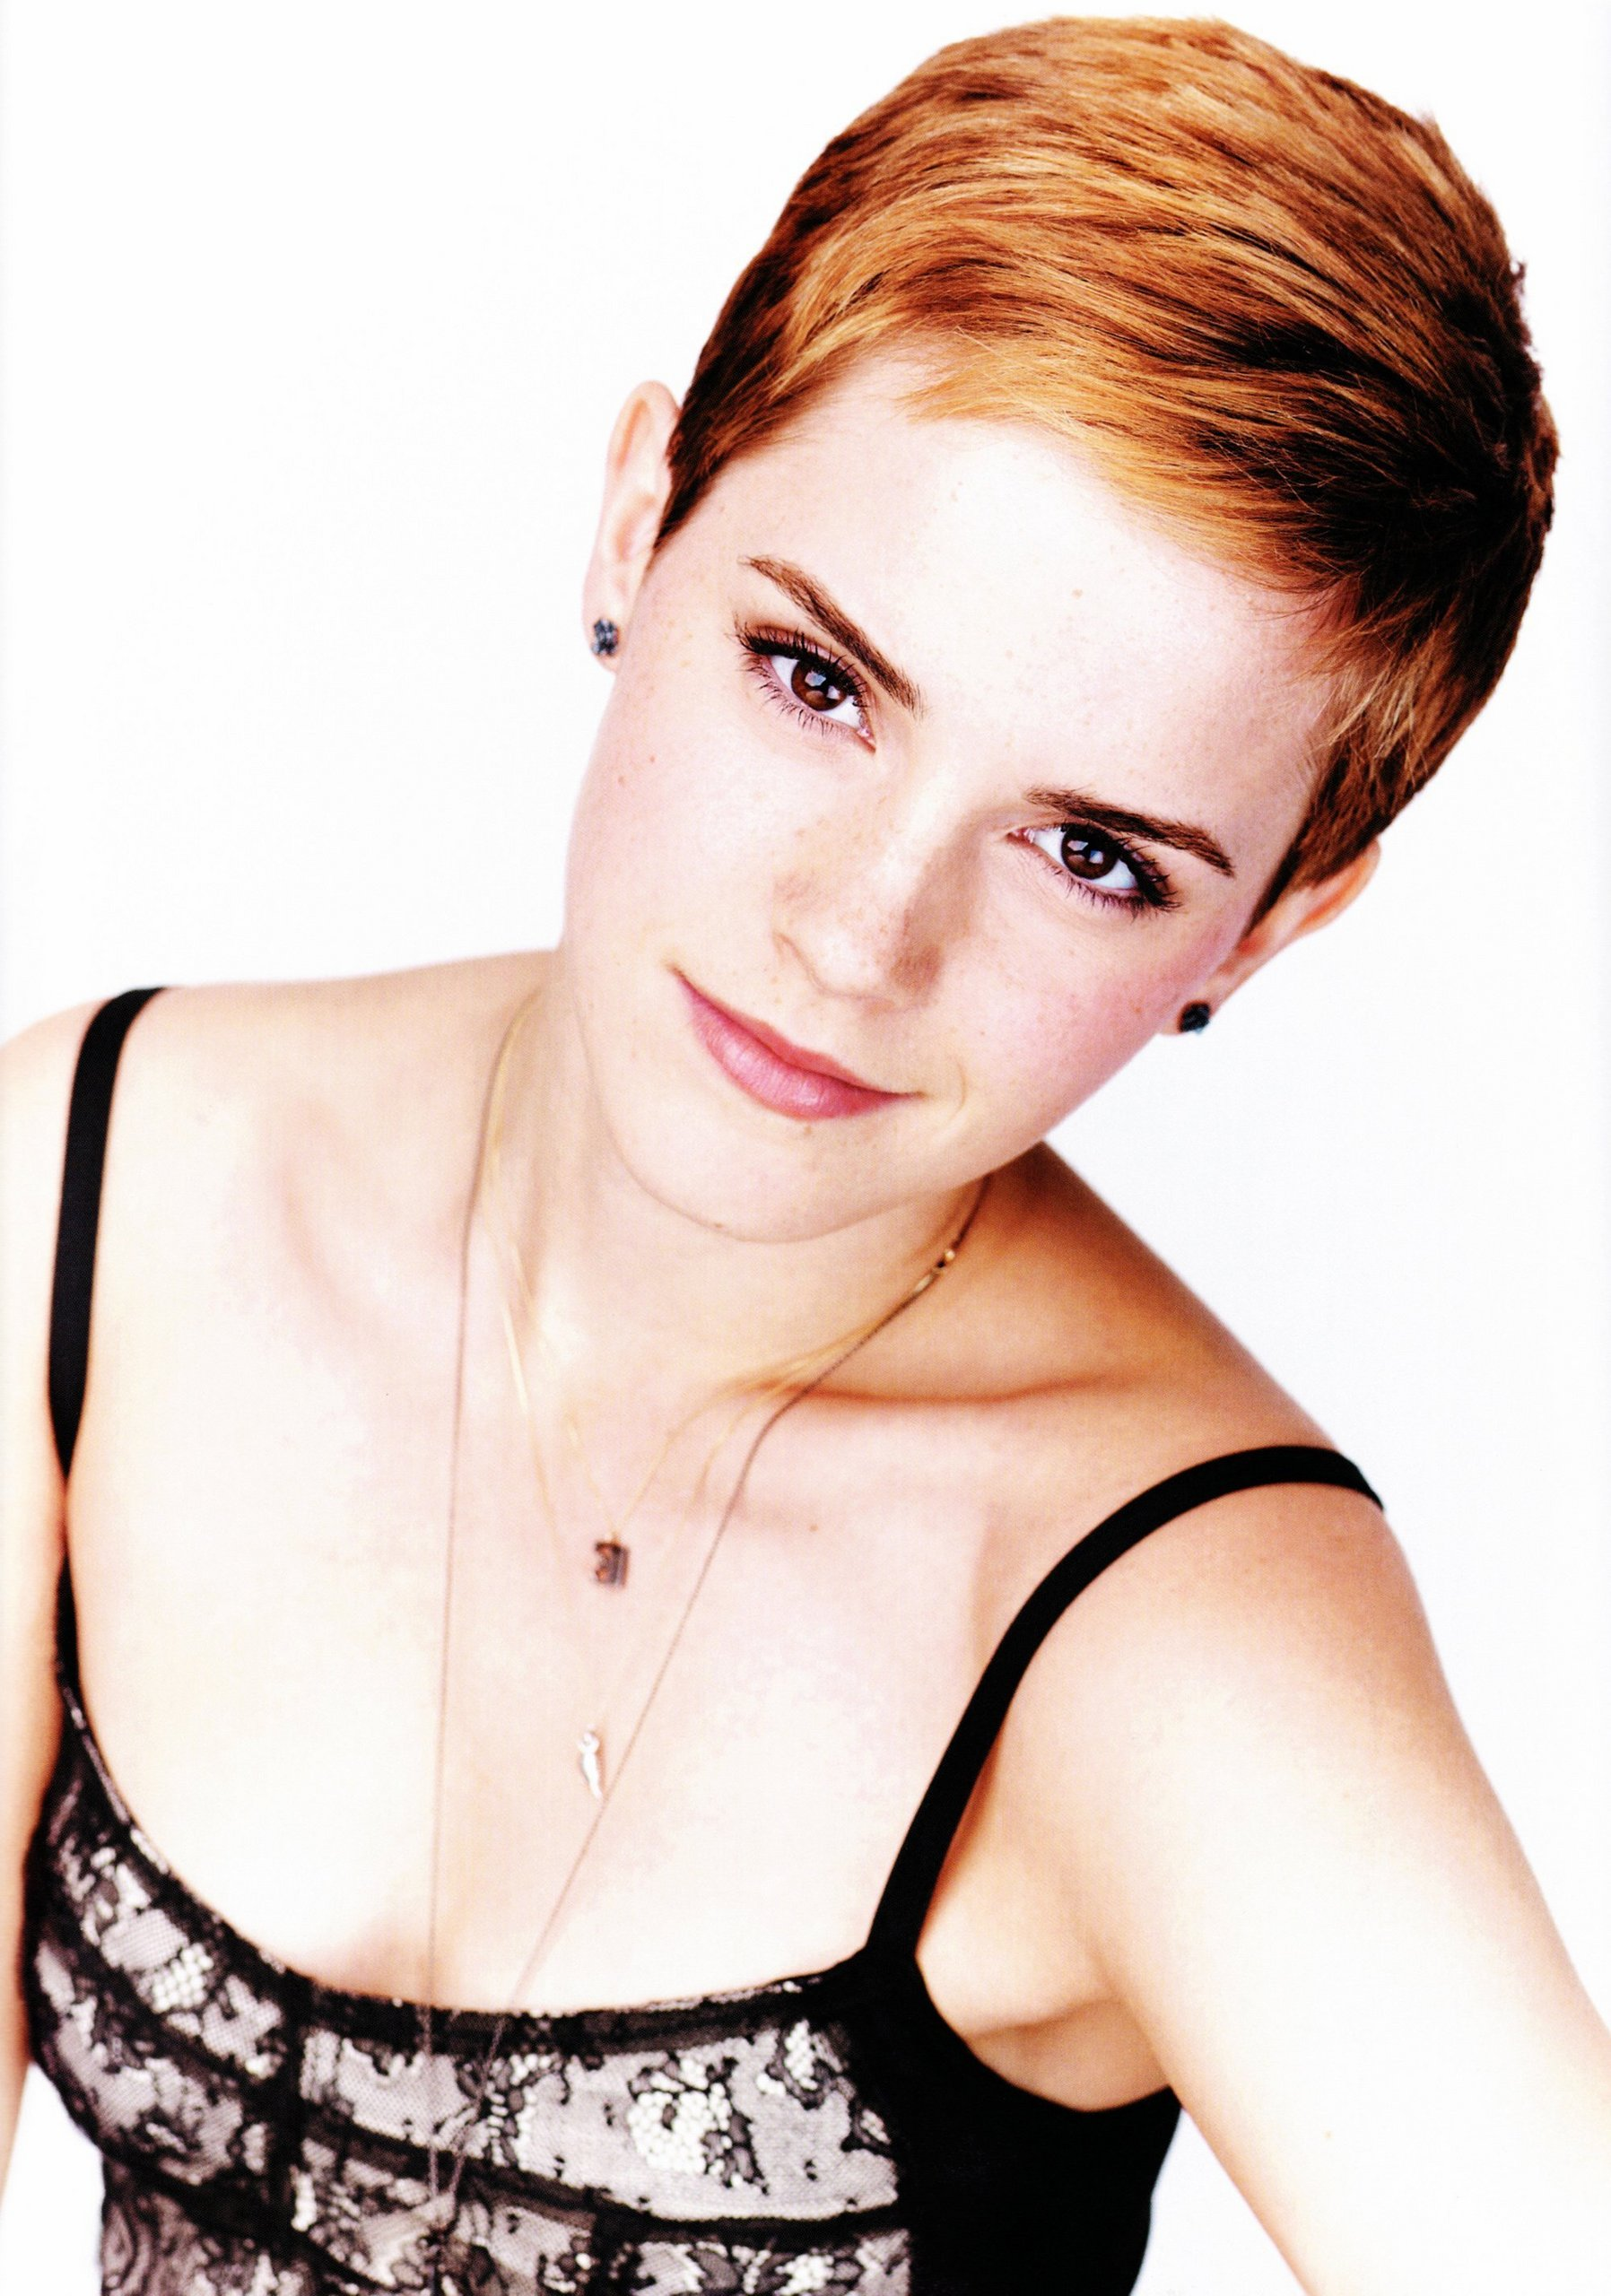 Warner Bros Headshots Big Version Emma Watson Photo 16663261 Fanpop